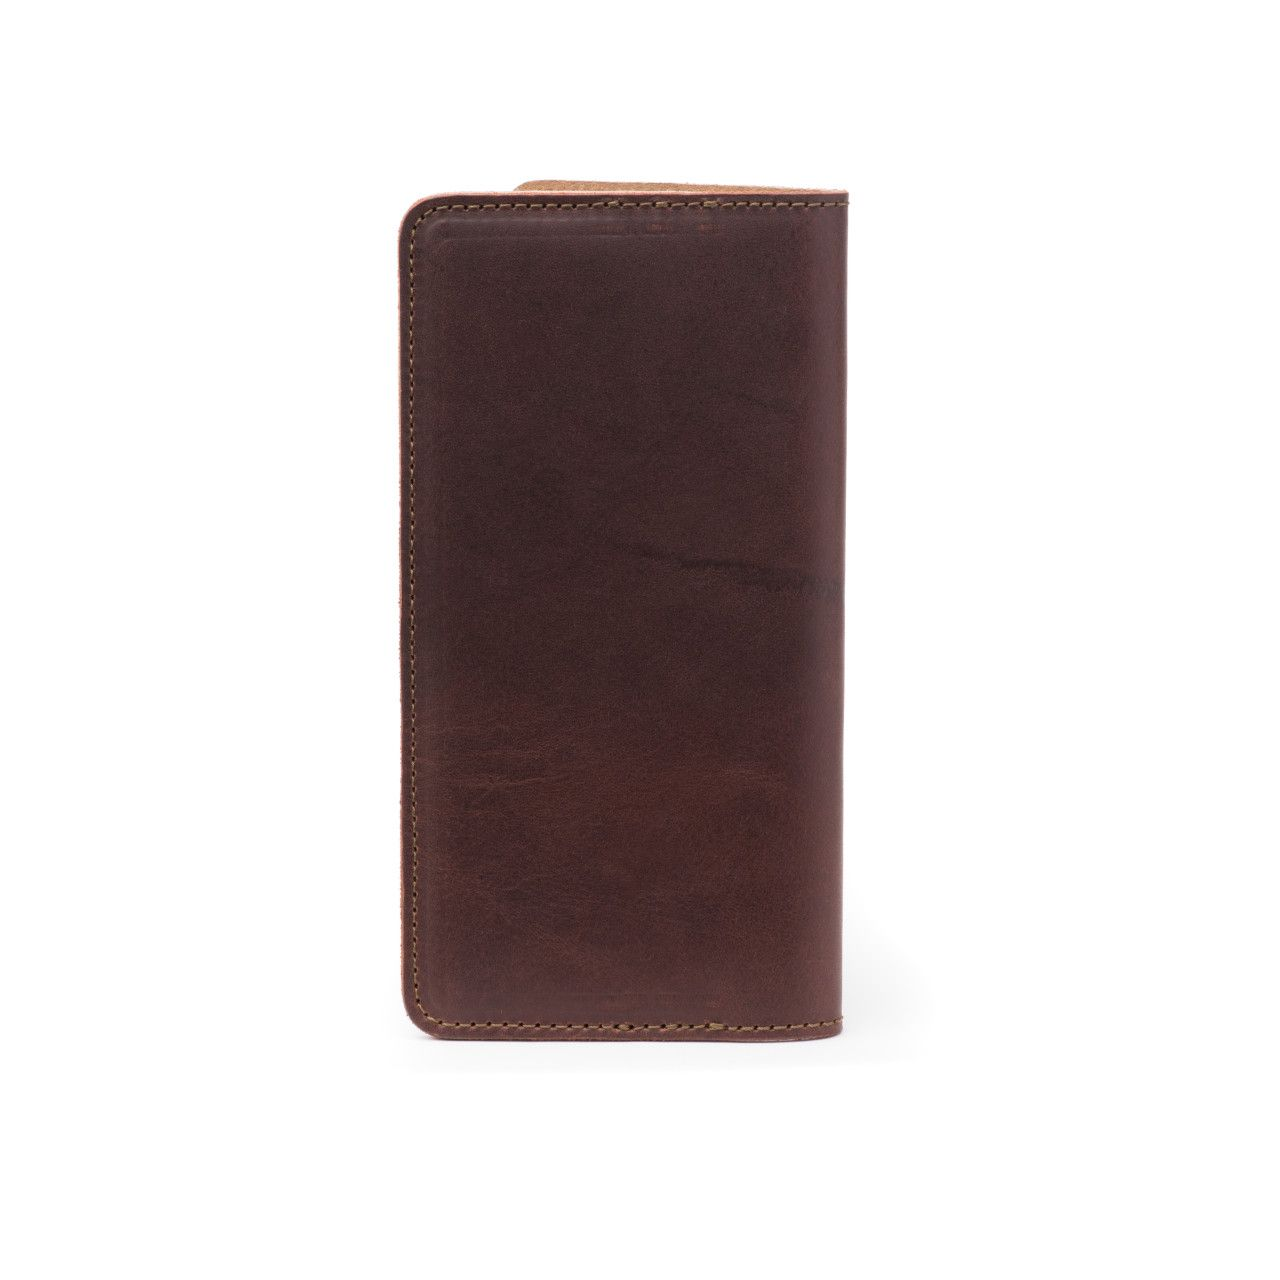 long leather passport wallet medium in chestnut leather